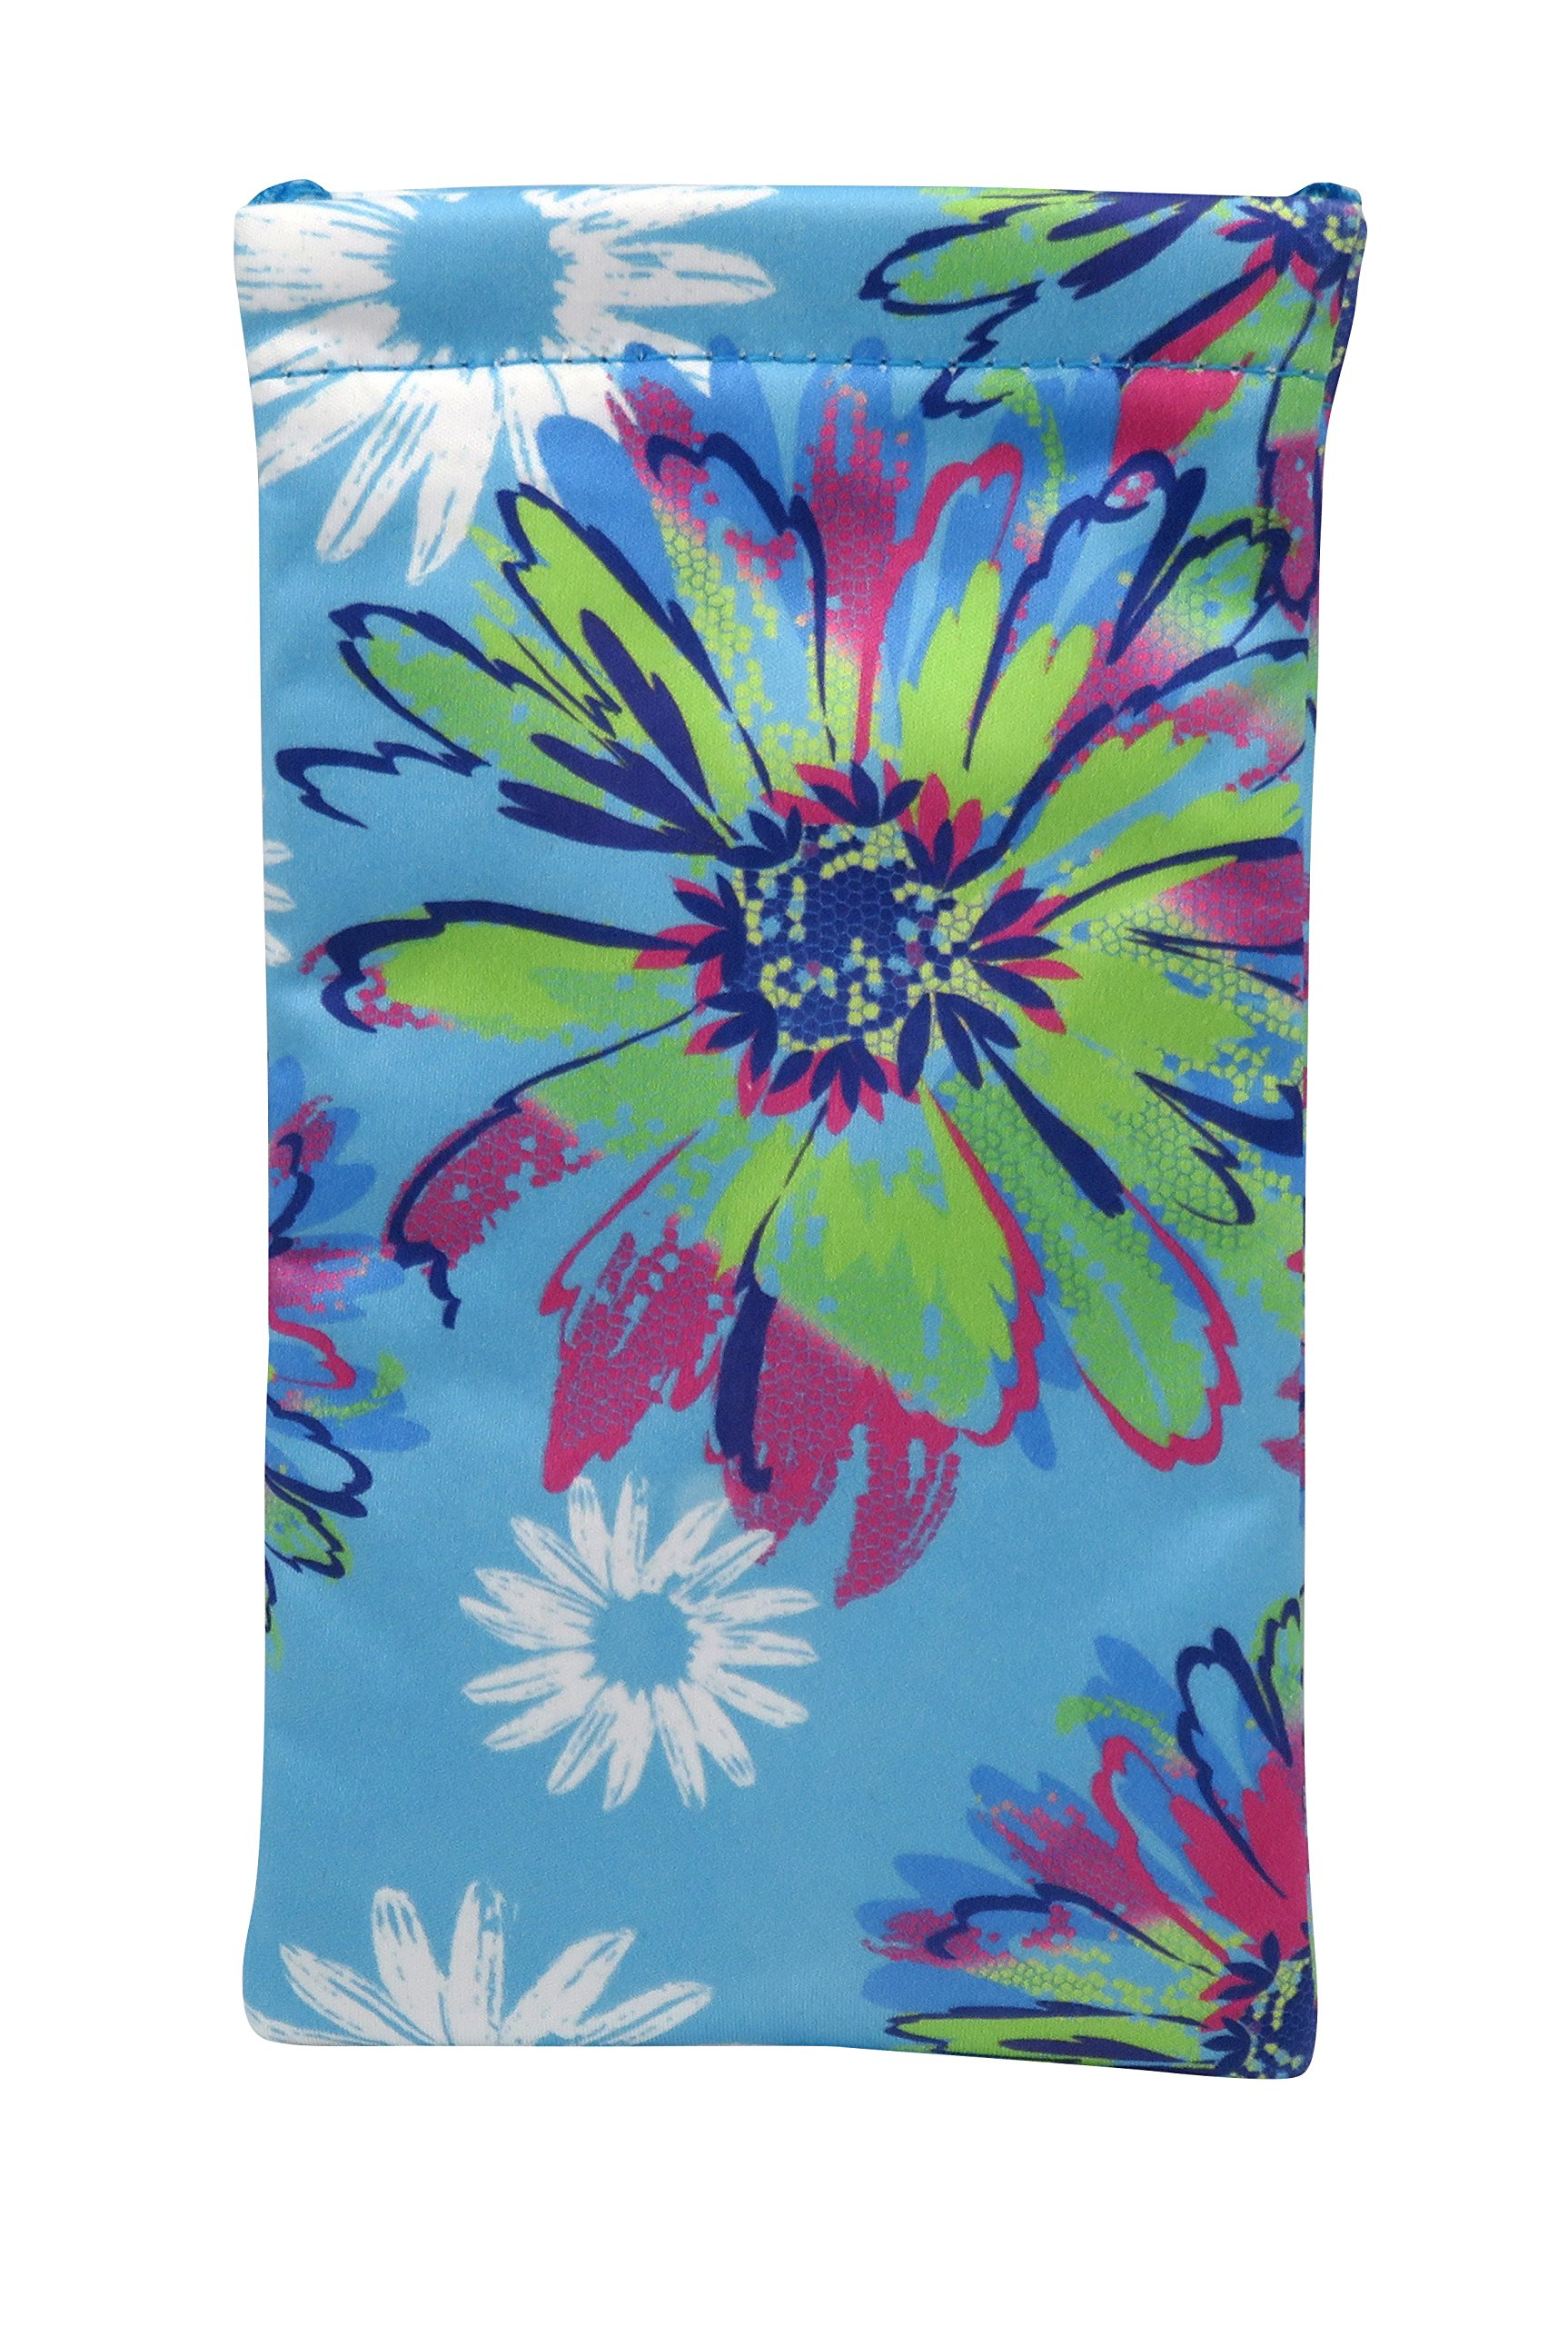 Floral Sunglass Pouch & Eyeglass Pouch, Squeeze Top XL Eyeglass Case with Cleaning Cloth, Medium To Oversized Frames Glasses Case, Smart Phone, Design by Rachel Rowberry (Pop Flower)